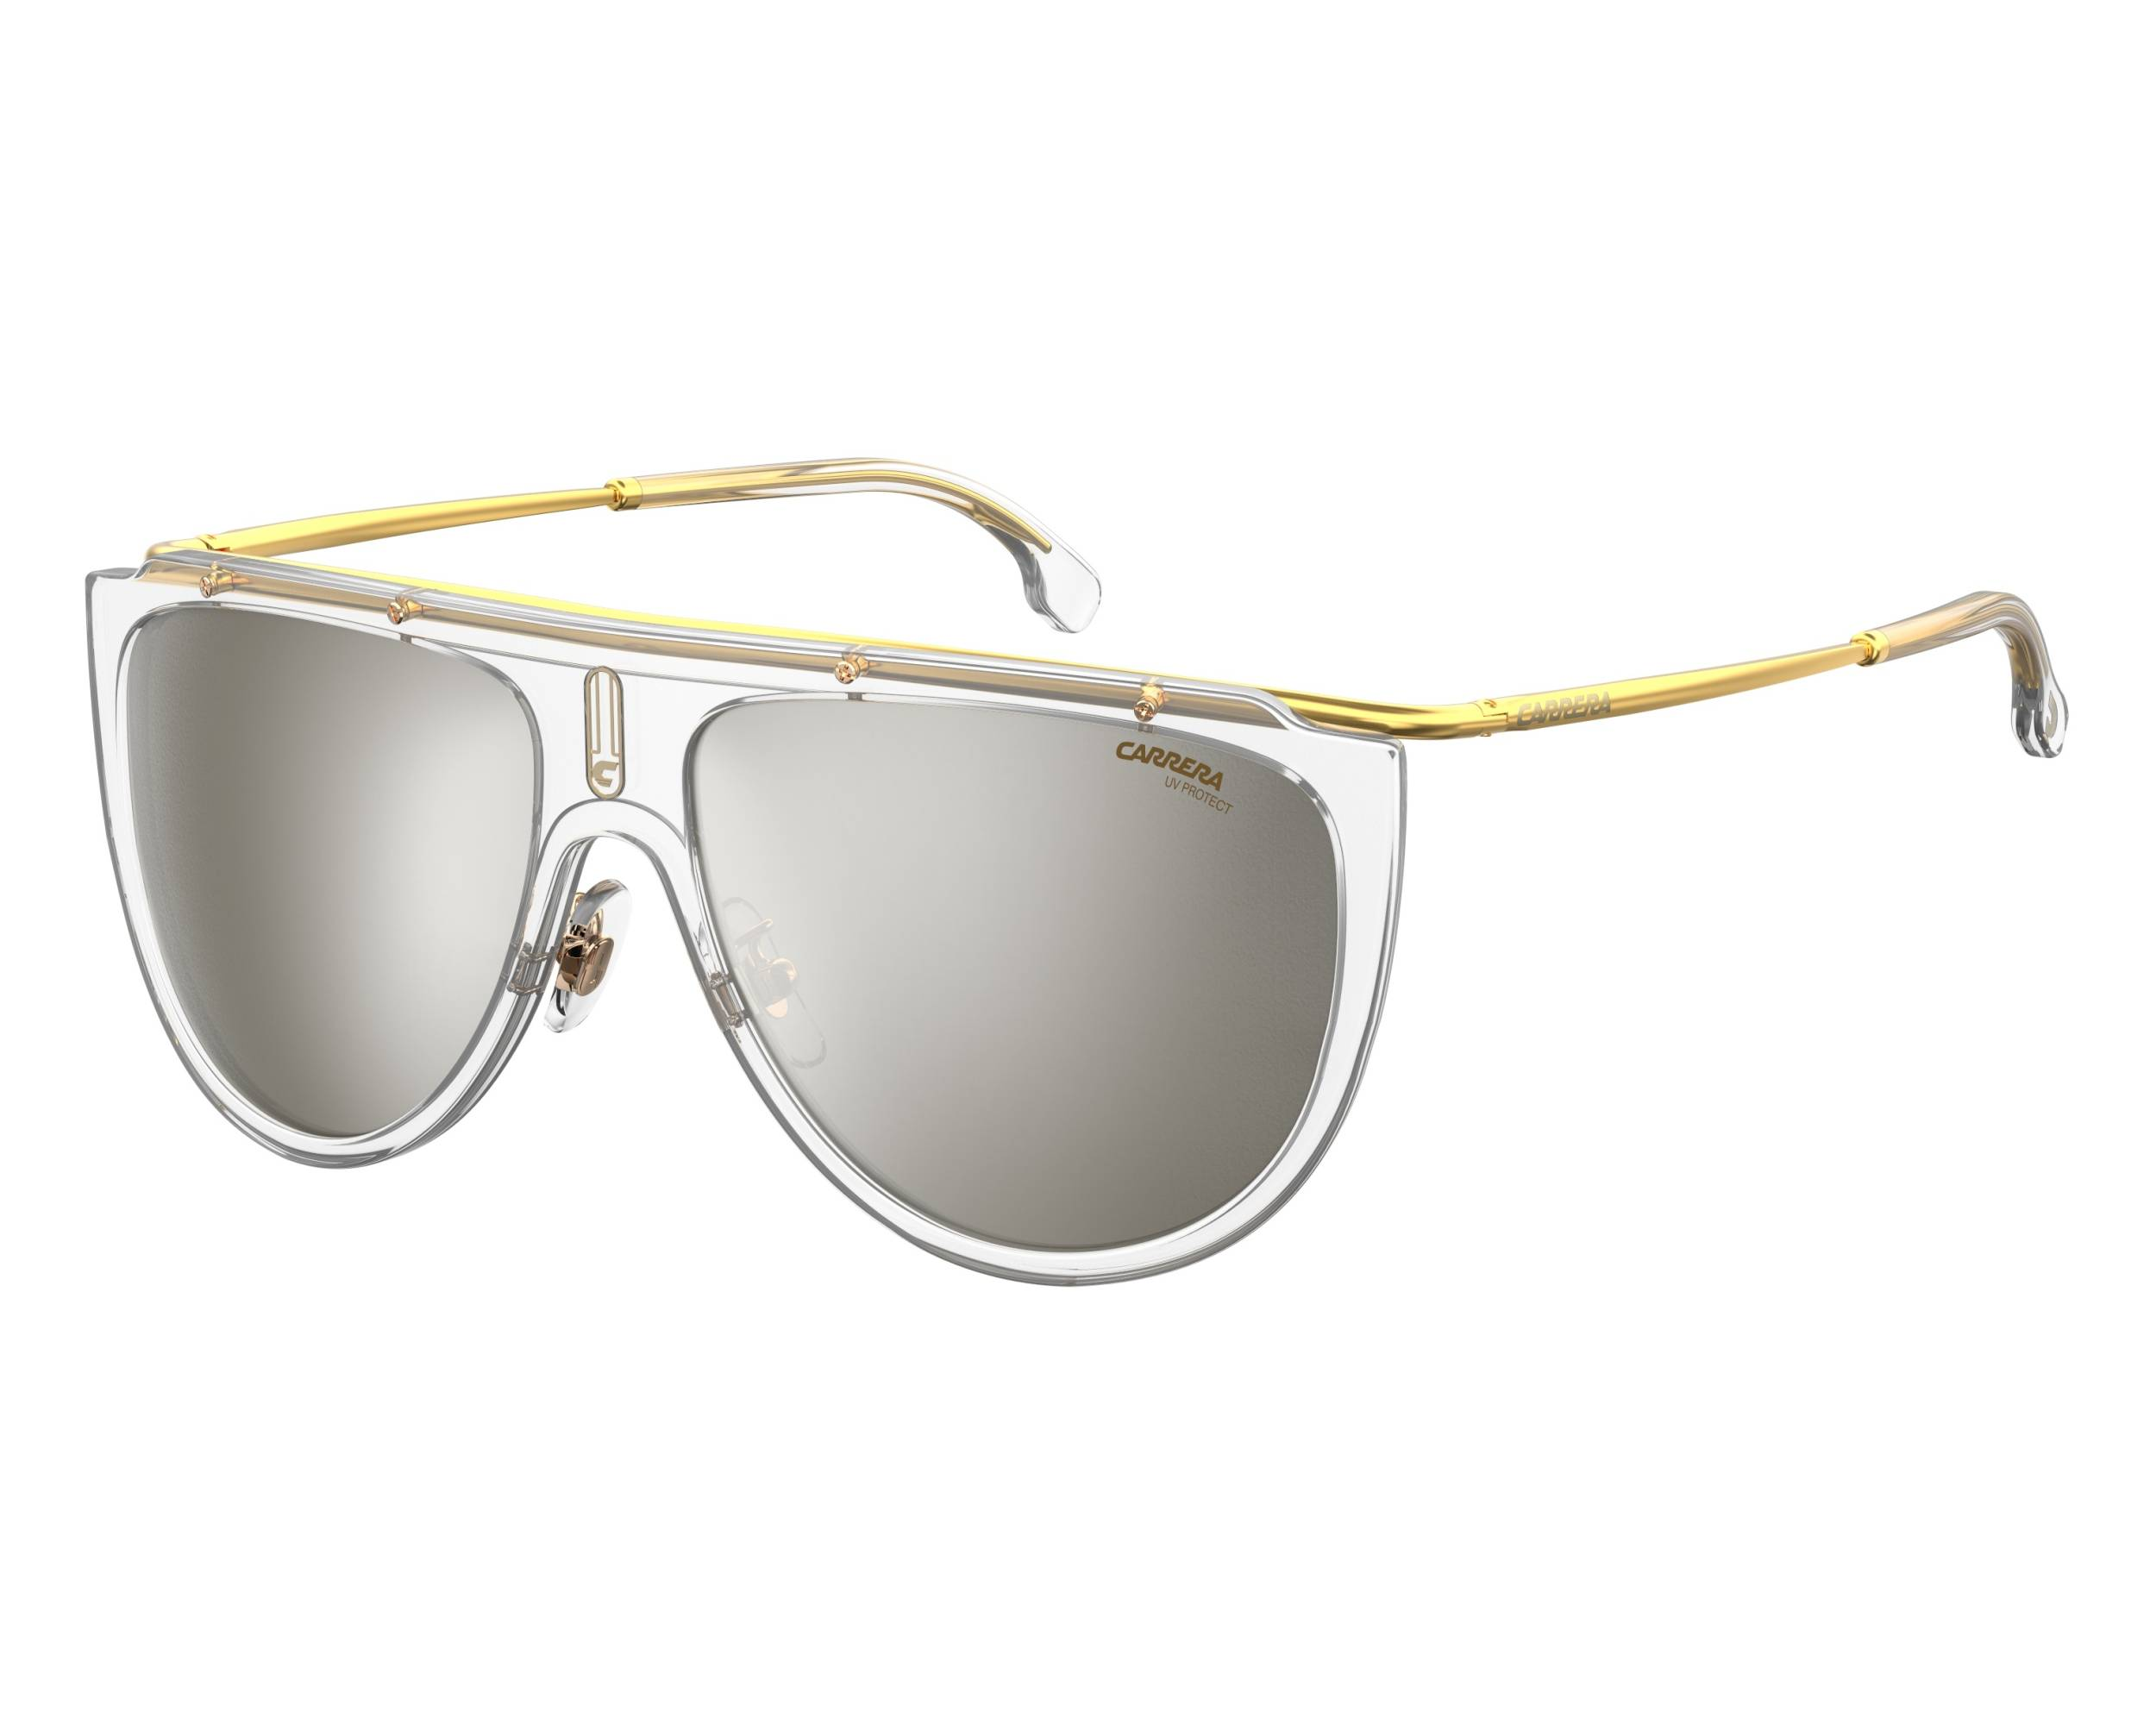 0eabec6836d7 Sunglasses Carrera 1023-S 900T4 - Crystal Gold profile view